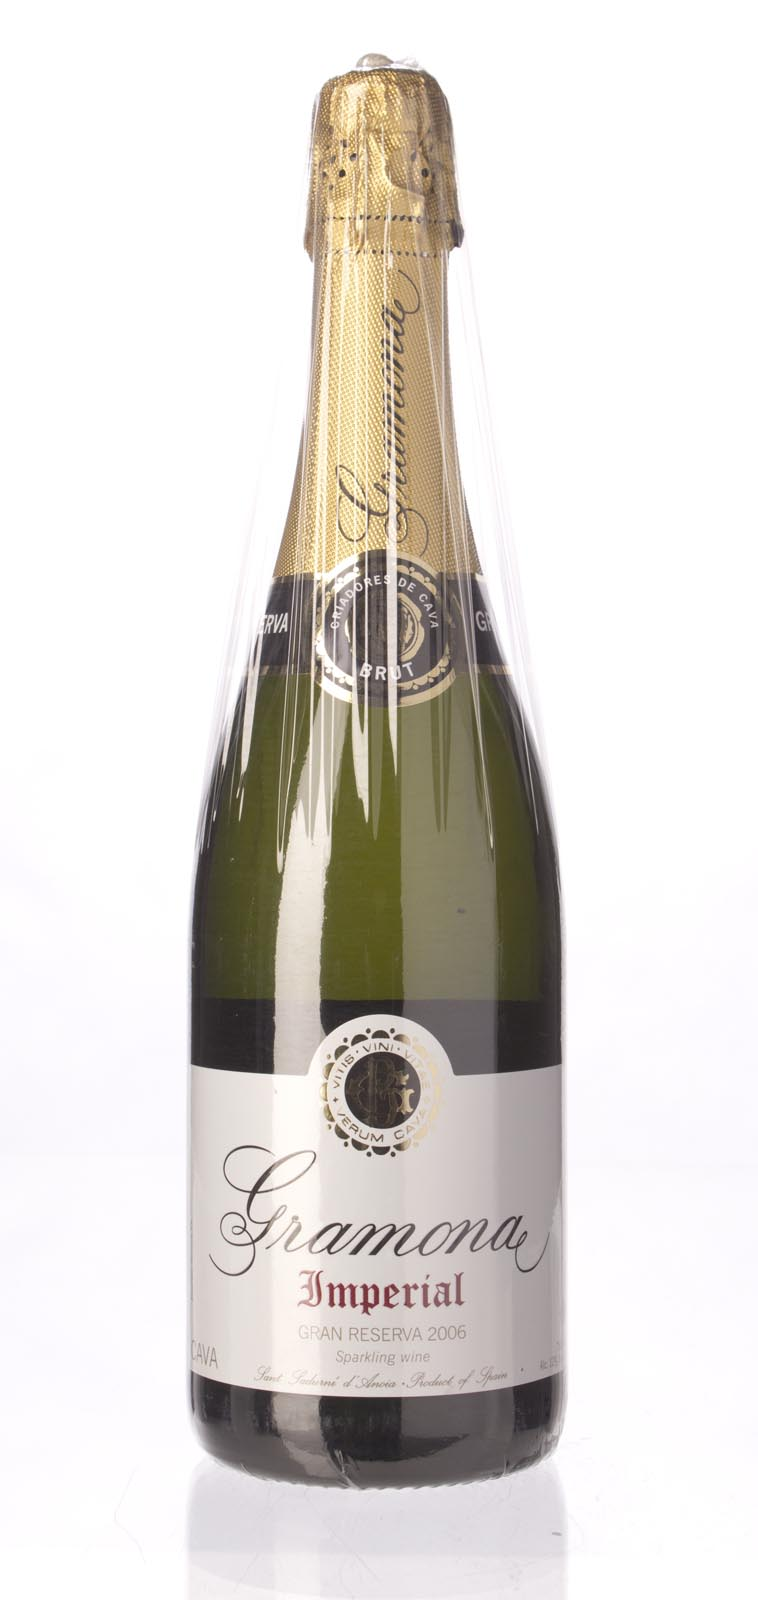 Gramona Gran Reserva Brut Imperial Cava 2006, 750mL (WA91) from The BPW - Merchants of rare and fine wines.